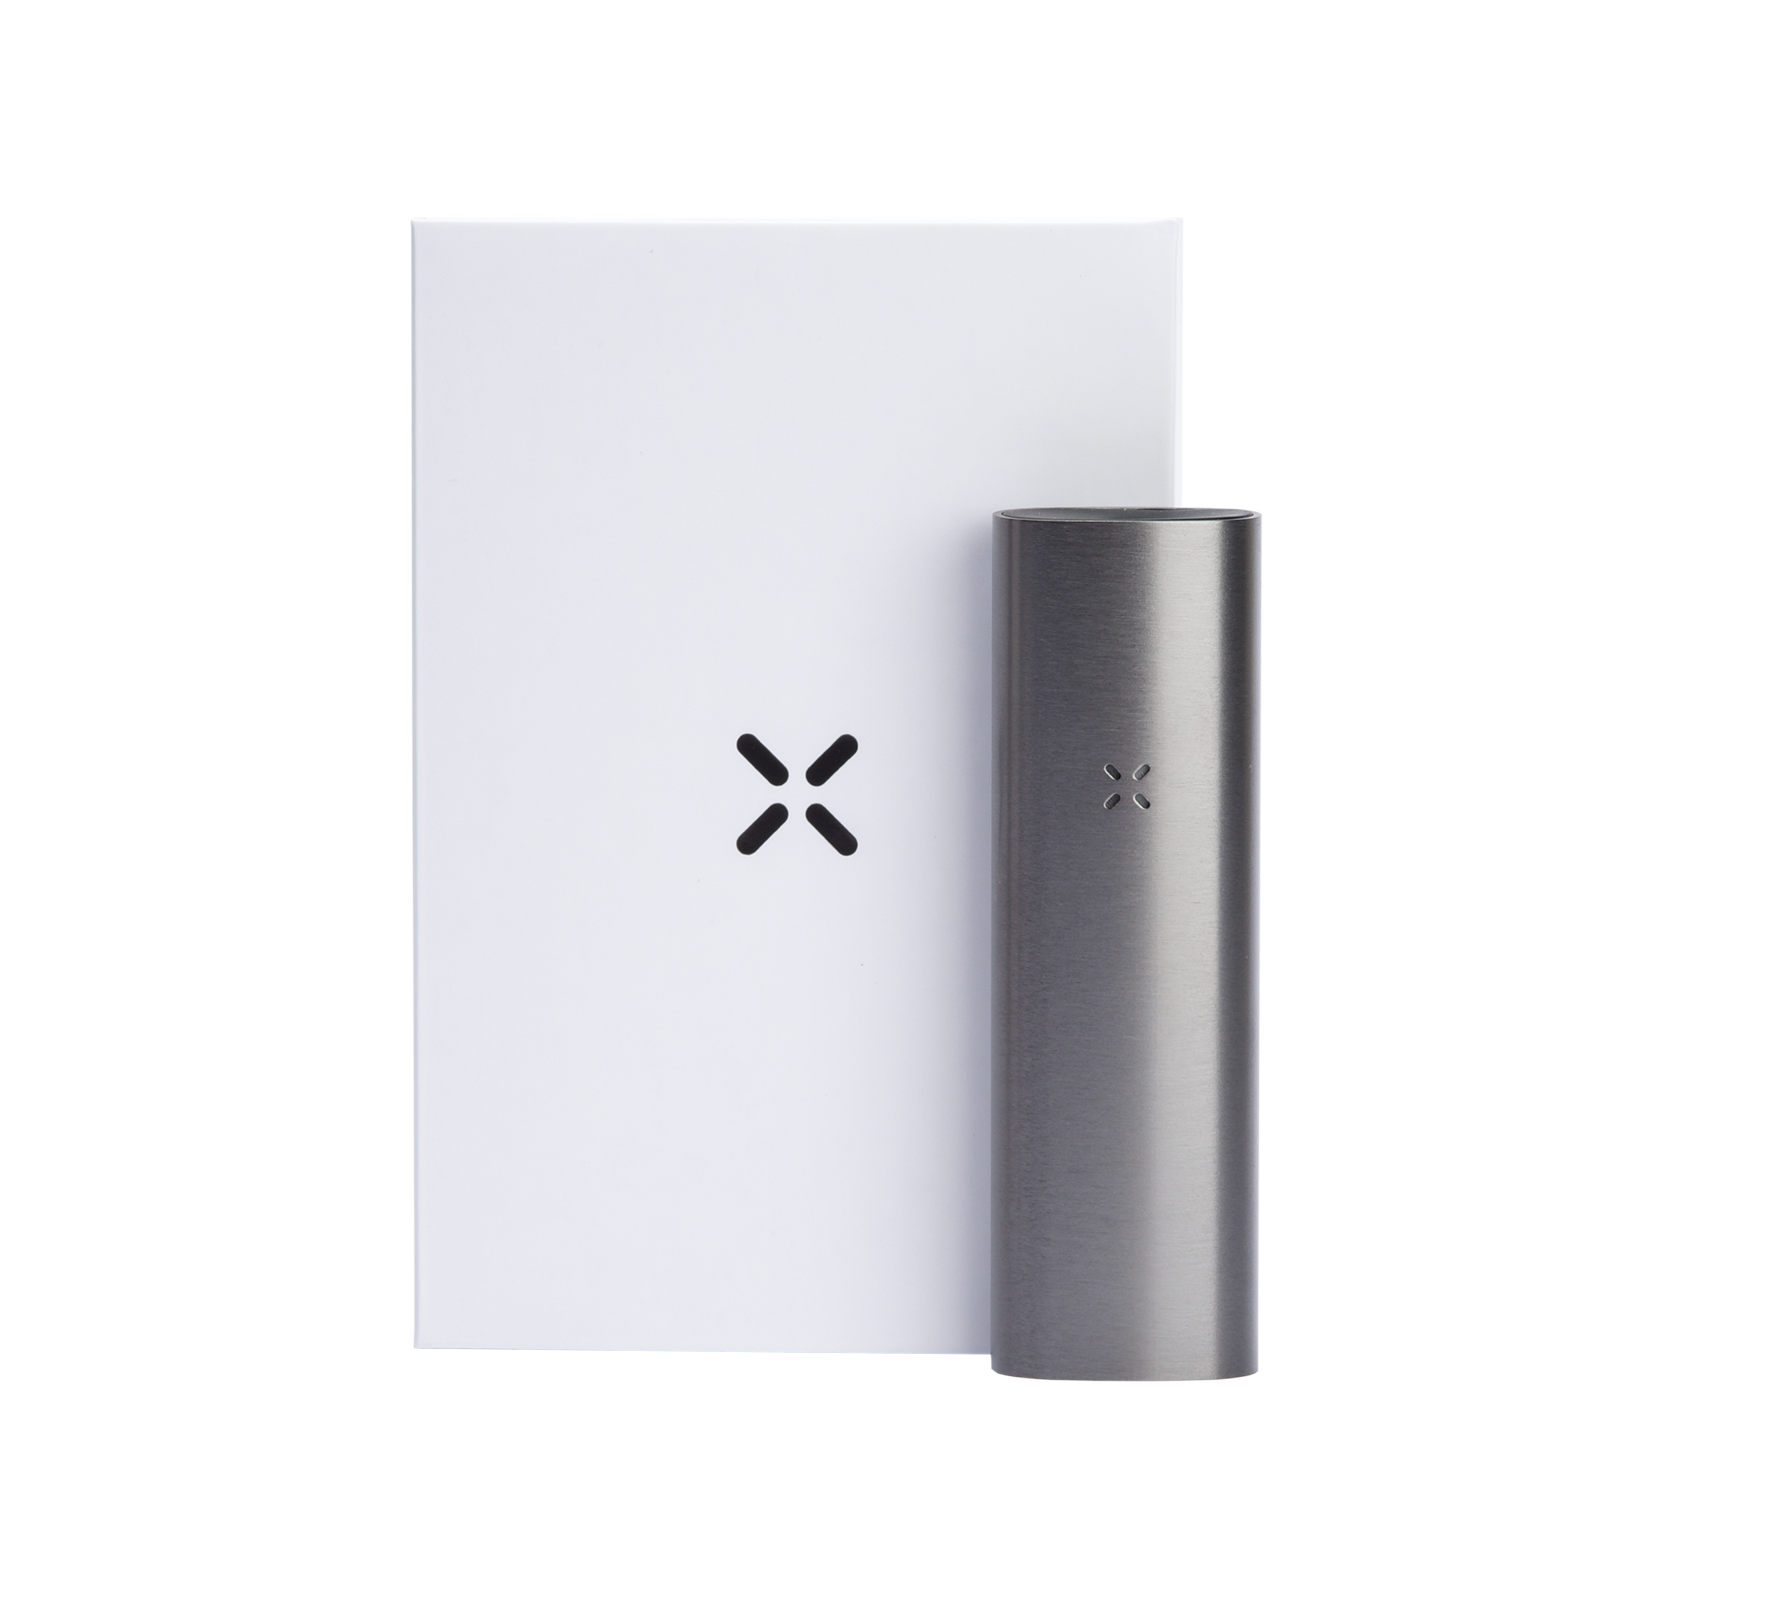 Tom_Hemps_product_pax2_vaporizer_box_single